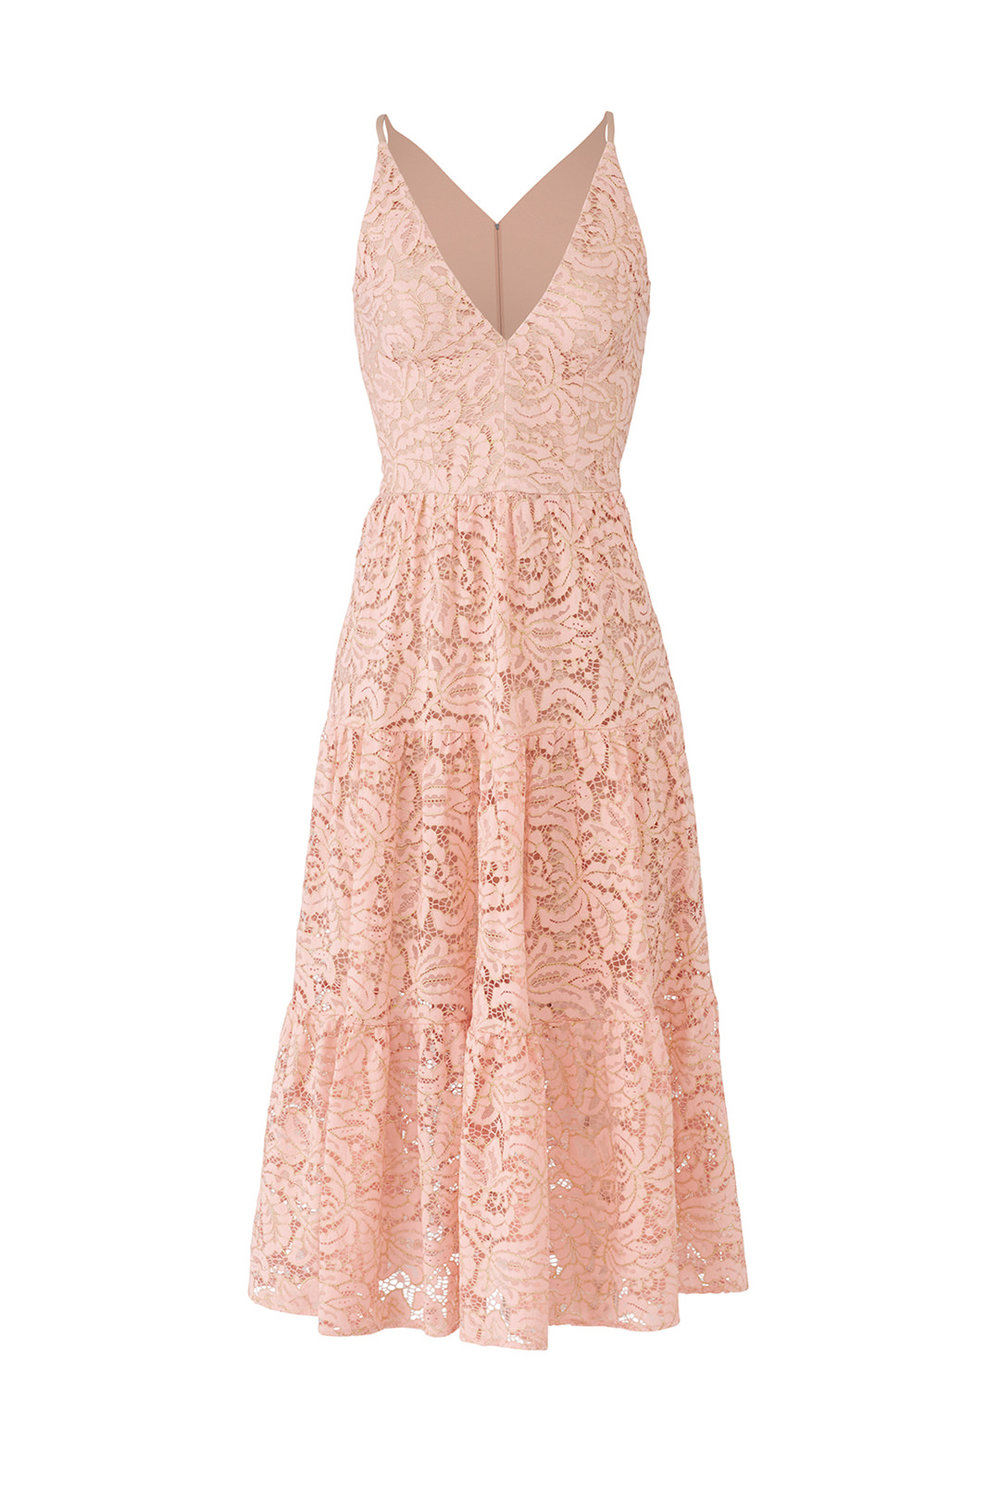 Rose Petal Alicia Dress by Dress the Population - Why It Works: Soft colors photograph more romantically, which is just perfect for your engagement session! The lace detail gives the dress texture and character while the sheer hem can let some light peek through.